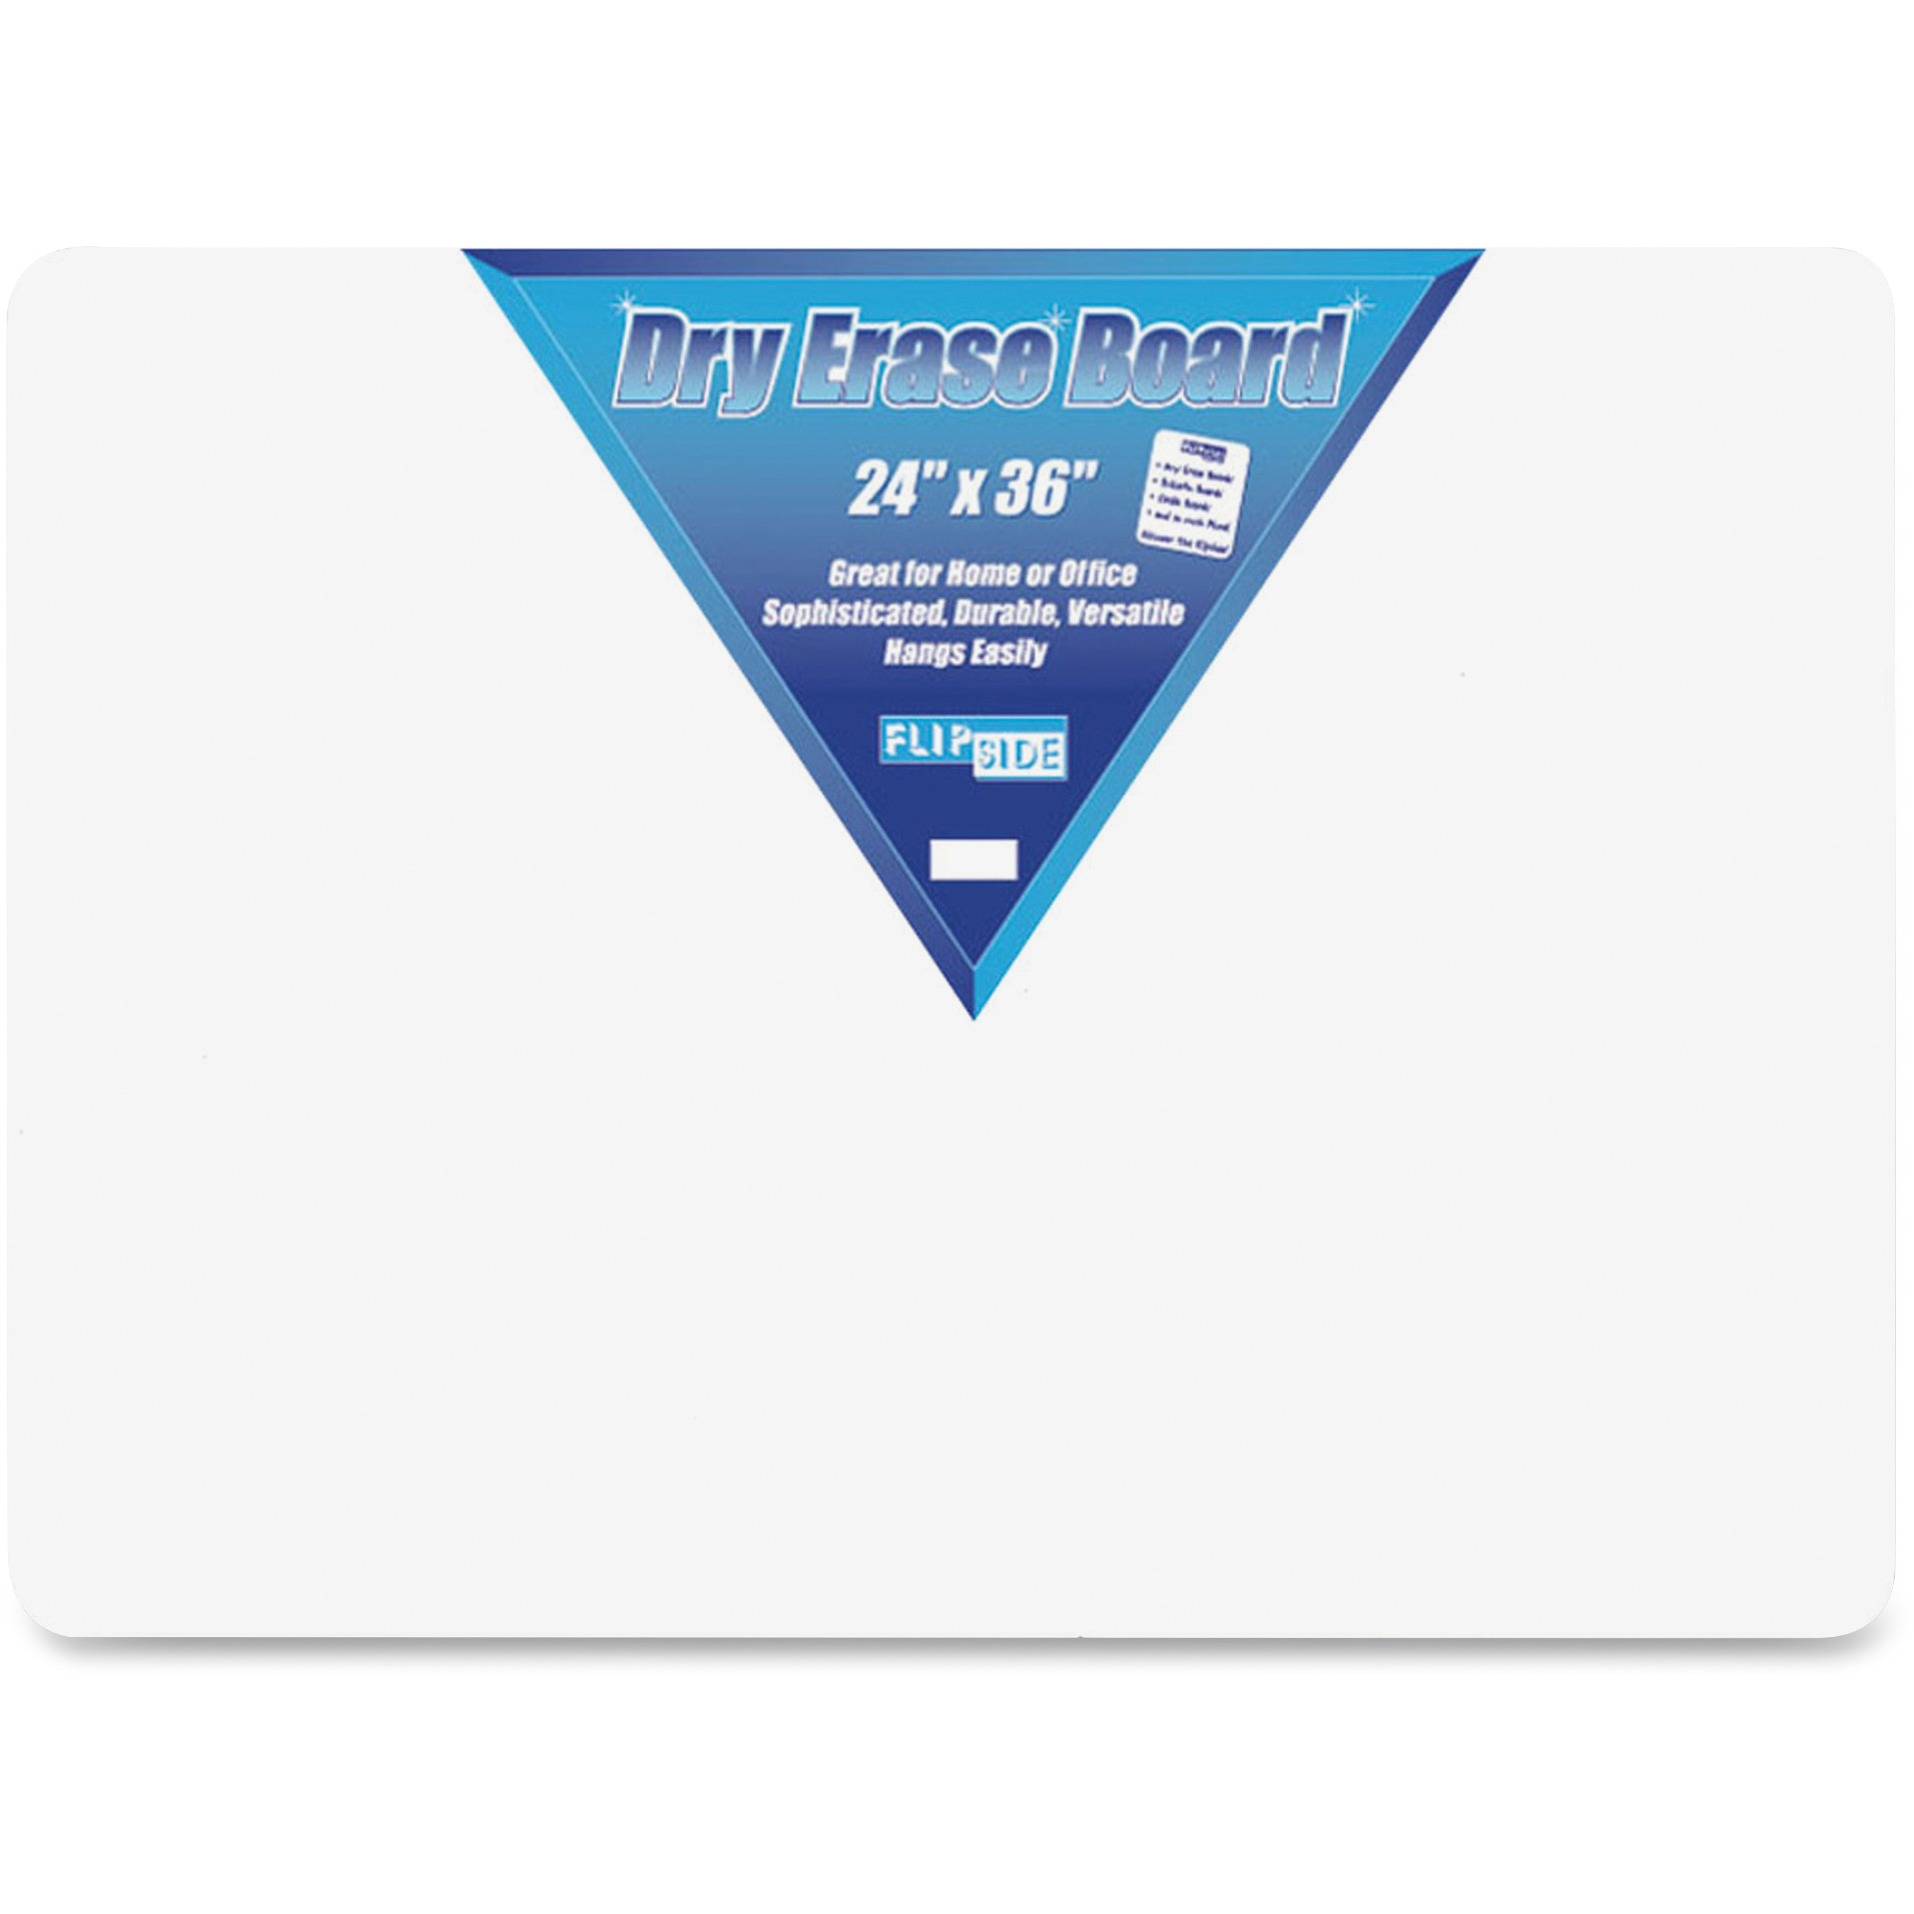 Flipside Dry Erase Board, 2' x 3', White, Frameless by Flipside Products, Inc